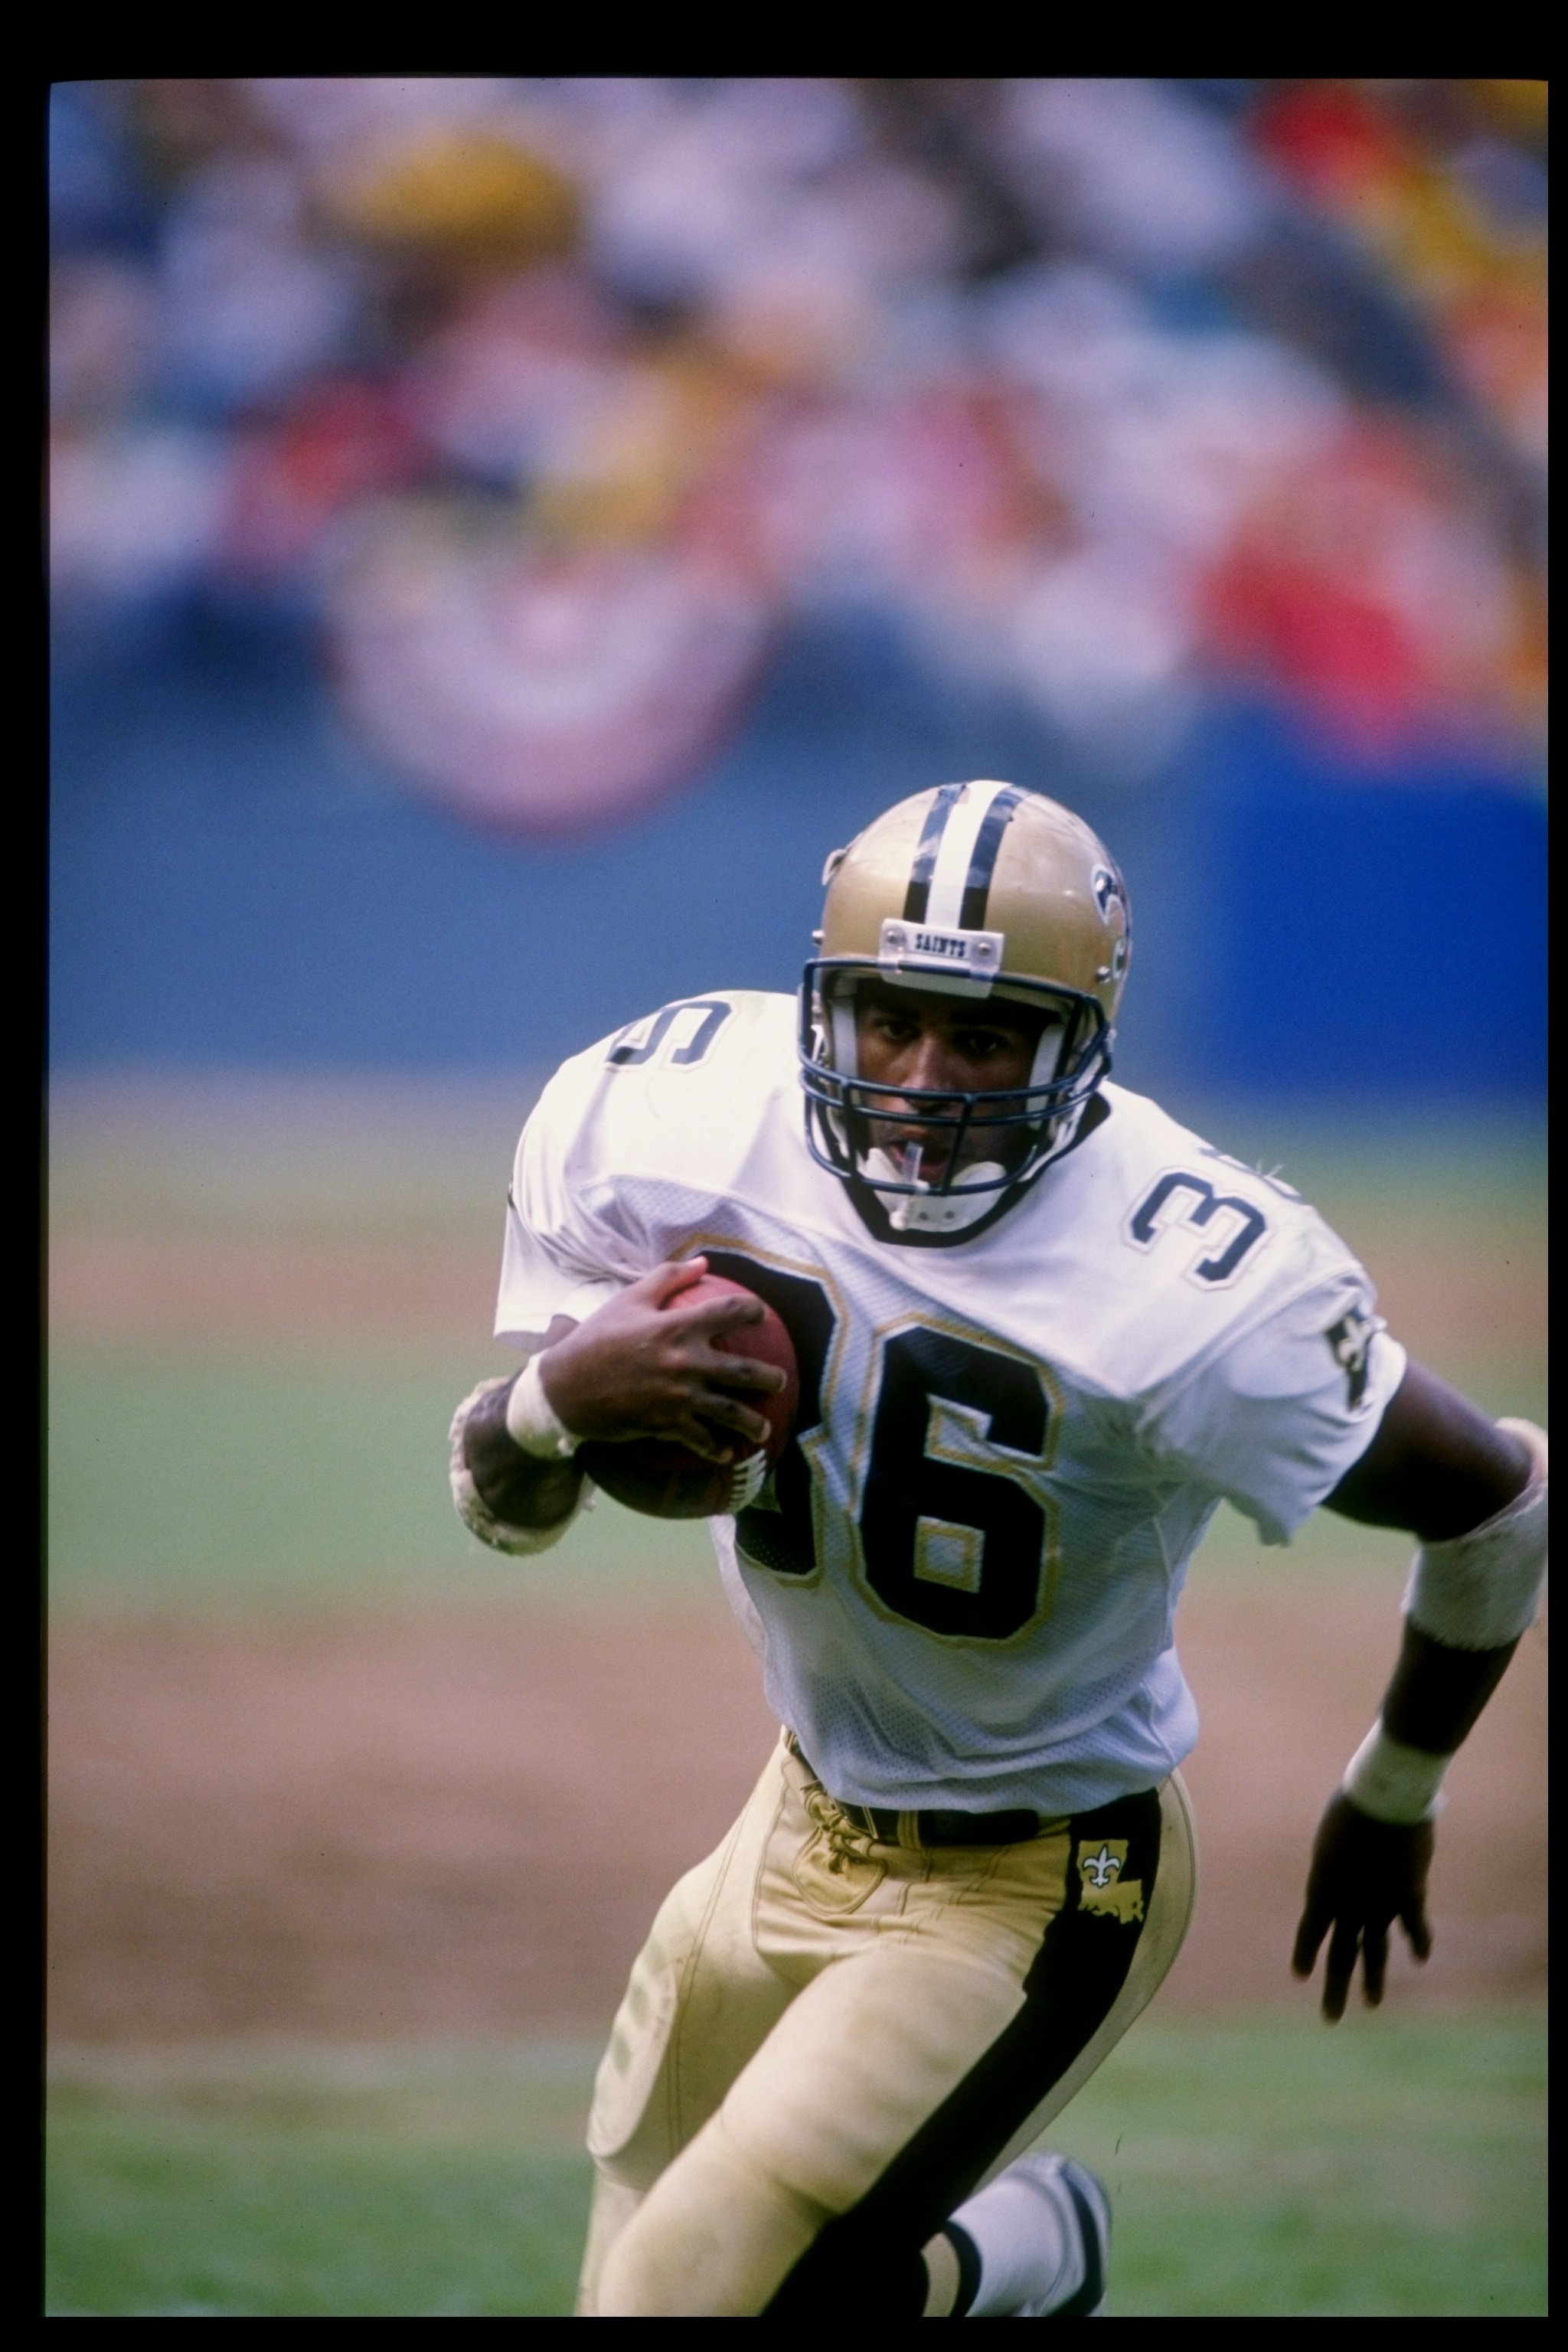 11 Sep 1988: Halfback Rueben Mayes of the New Orleans Saints runs with the ball during a game against the Atlanta Falcons at Fulton County Stadium in Atlanta, Georgia. The Saints won the game 29-21.